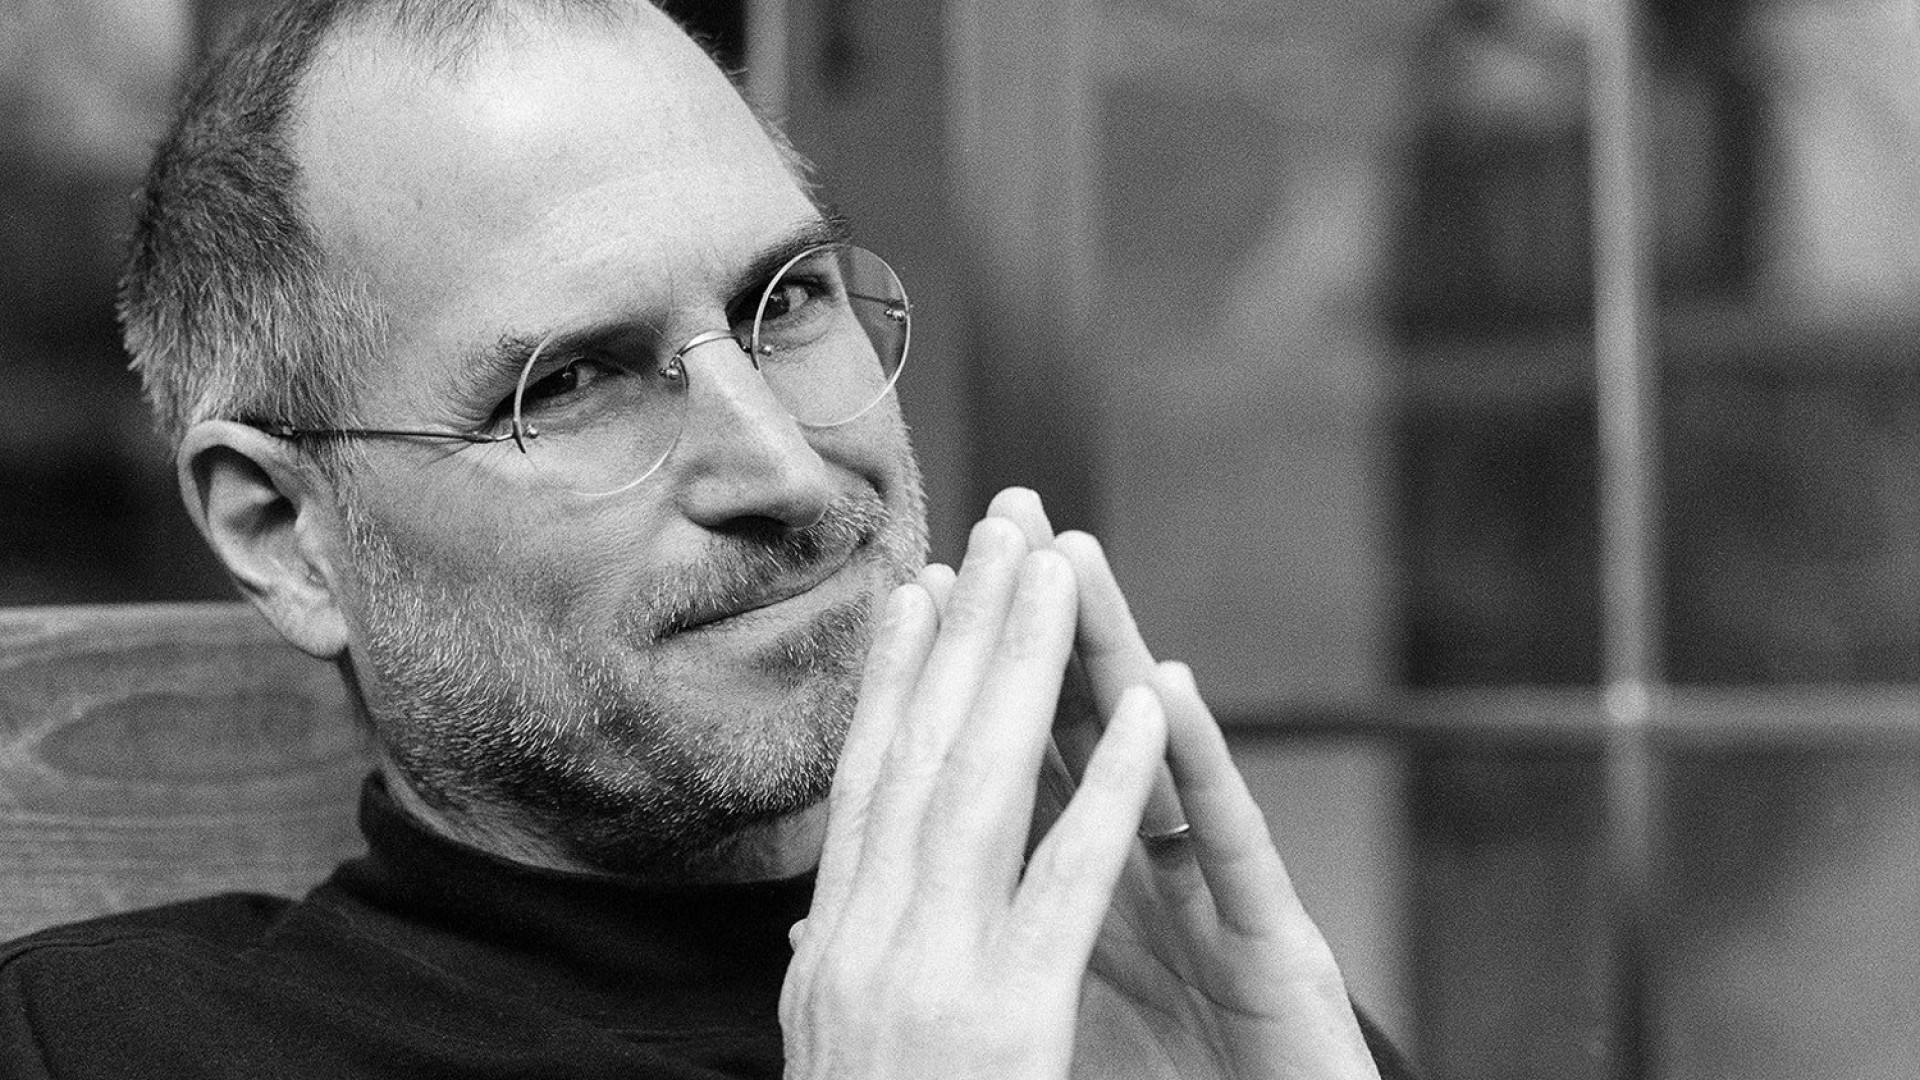 Steve-Jobs-explains-the-rules-for-success.jpg